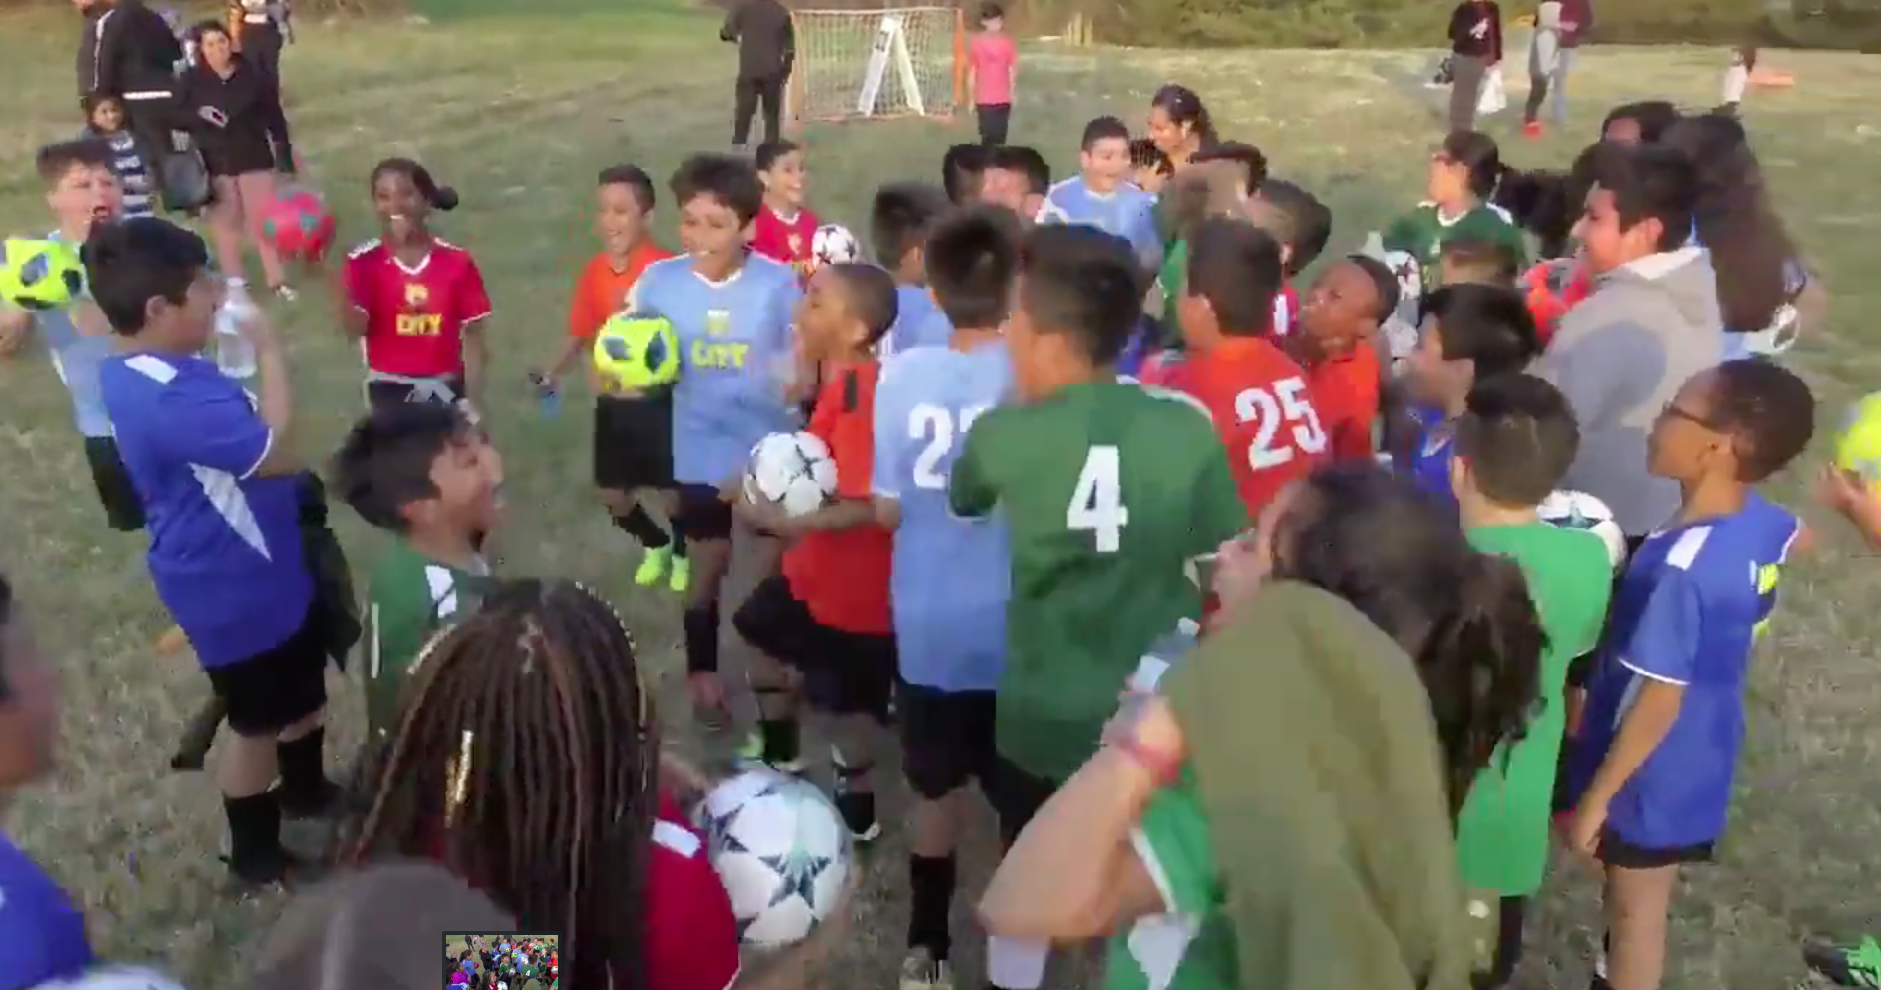 Kids at a soccer camp